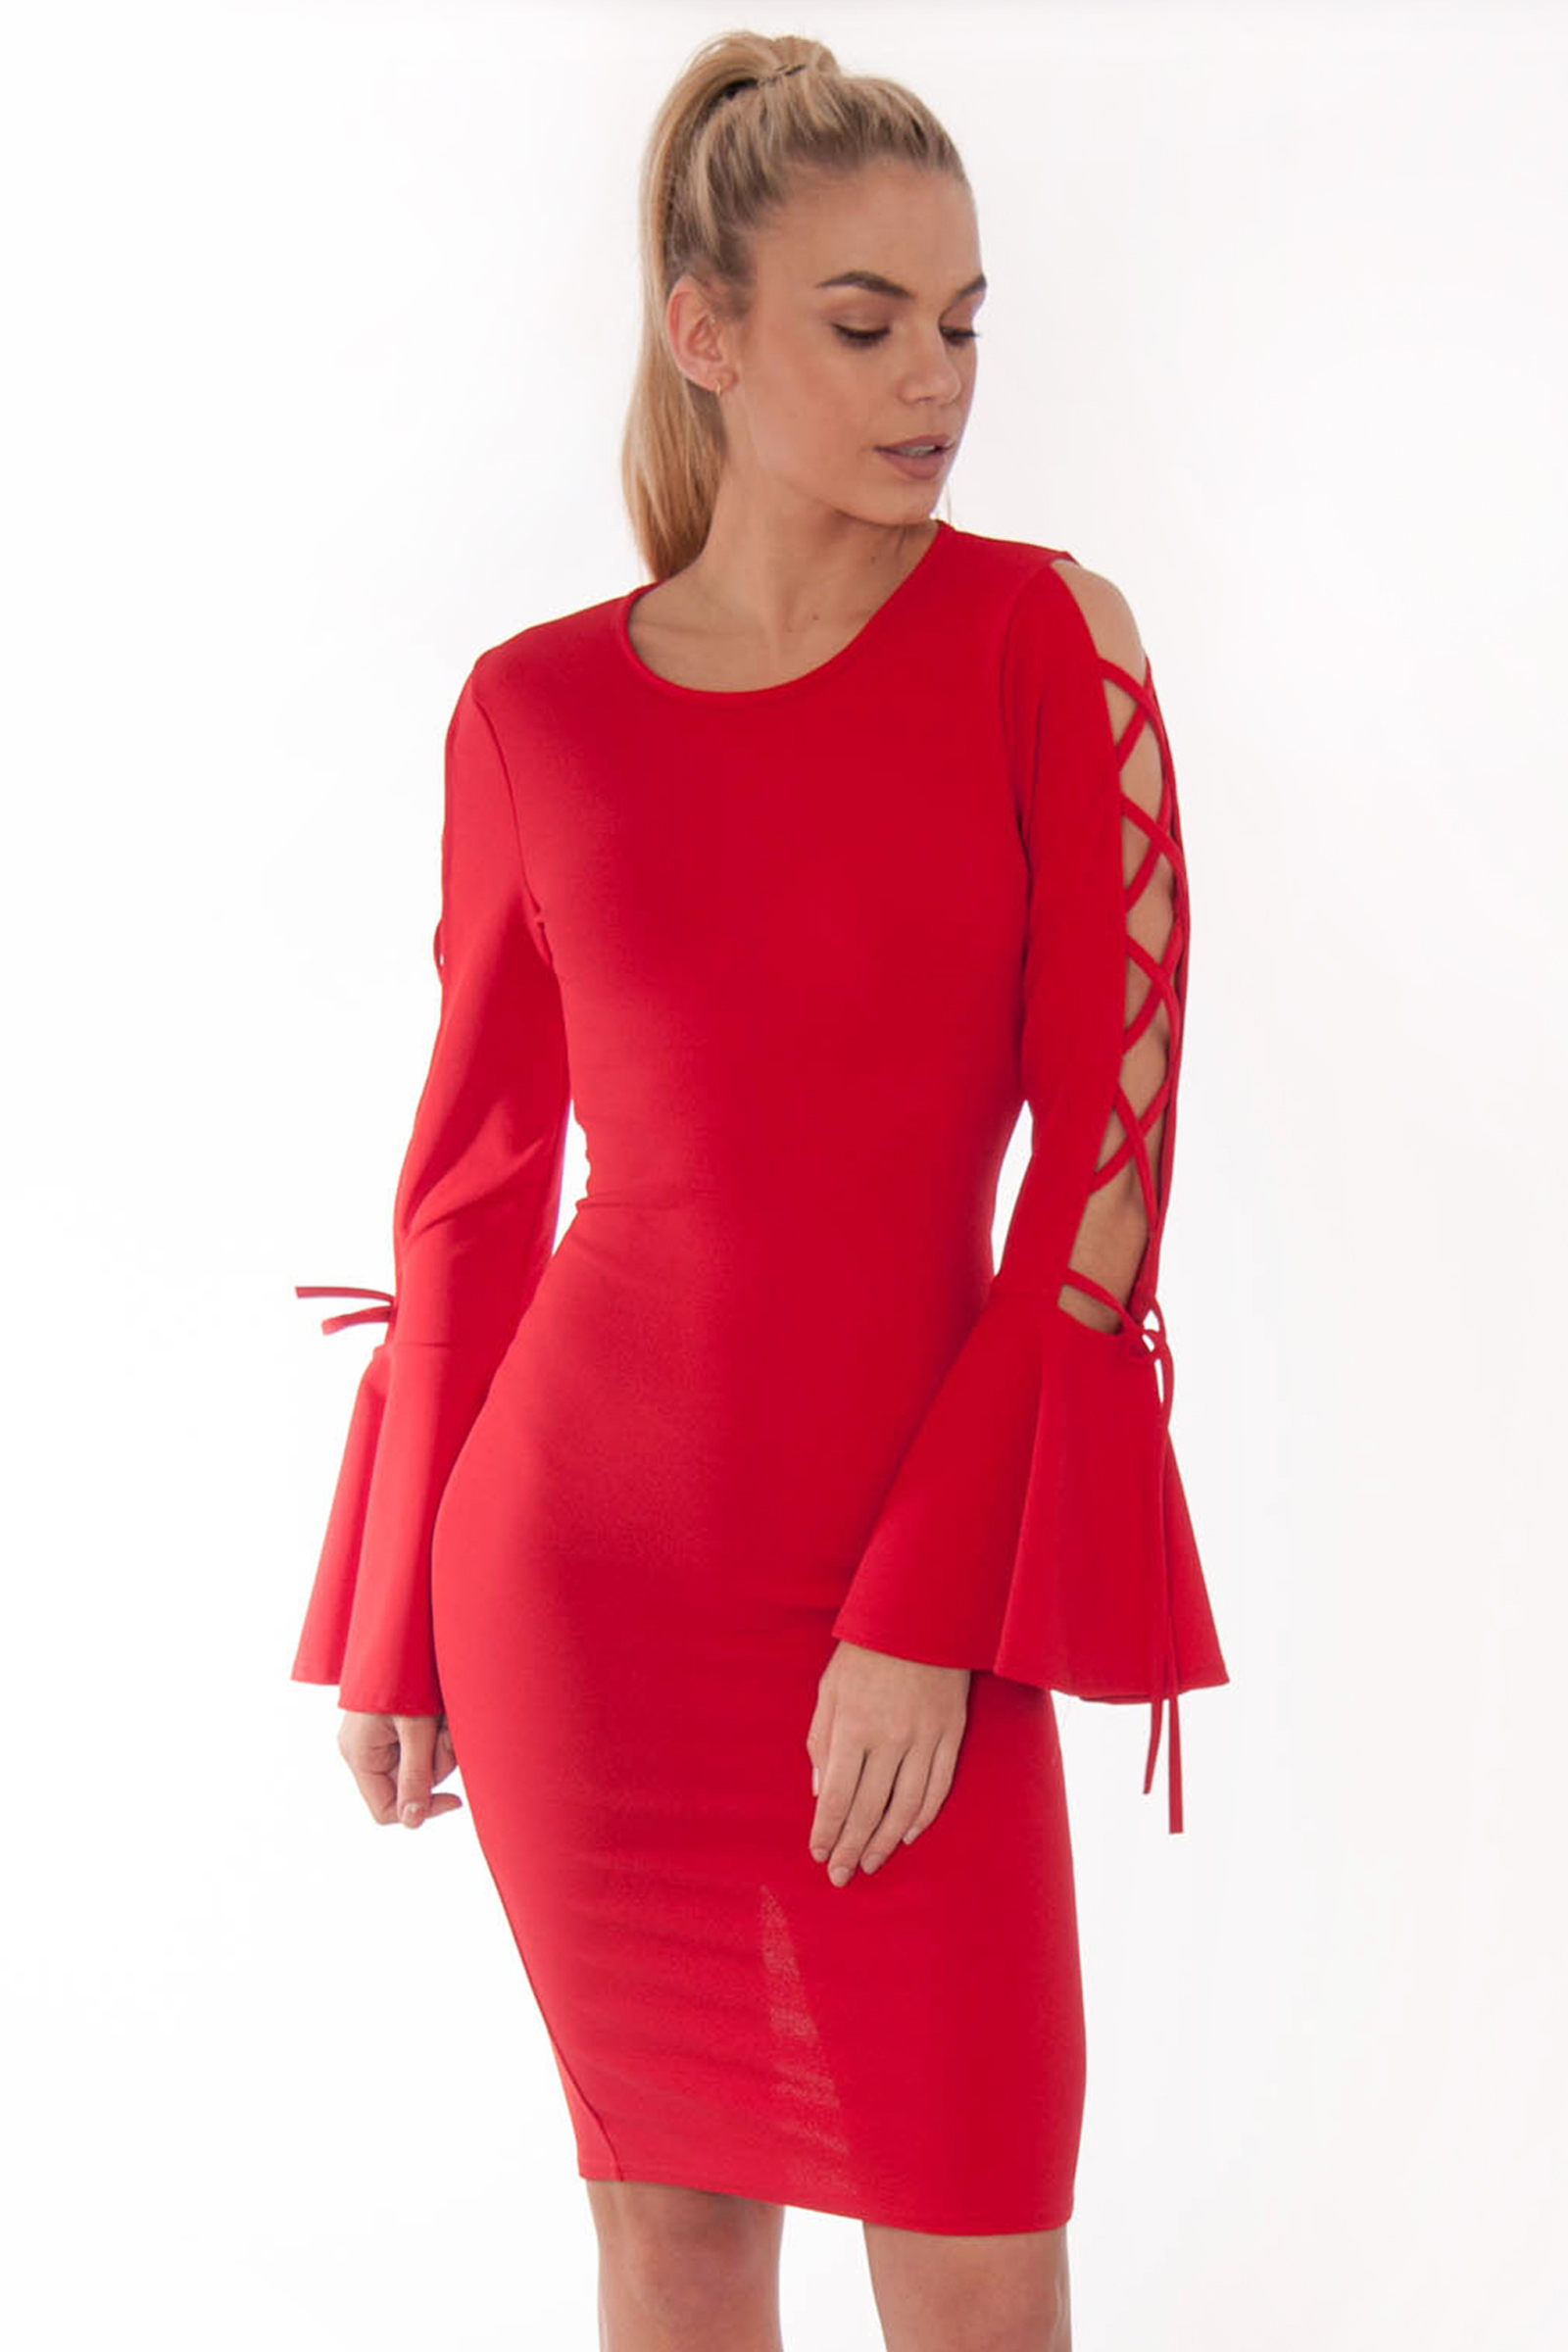 Katy Red Lace Up Bell Sleeve Dress Dress Fashion